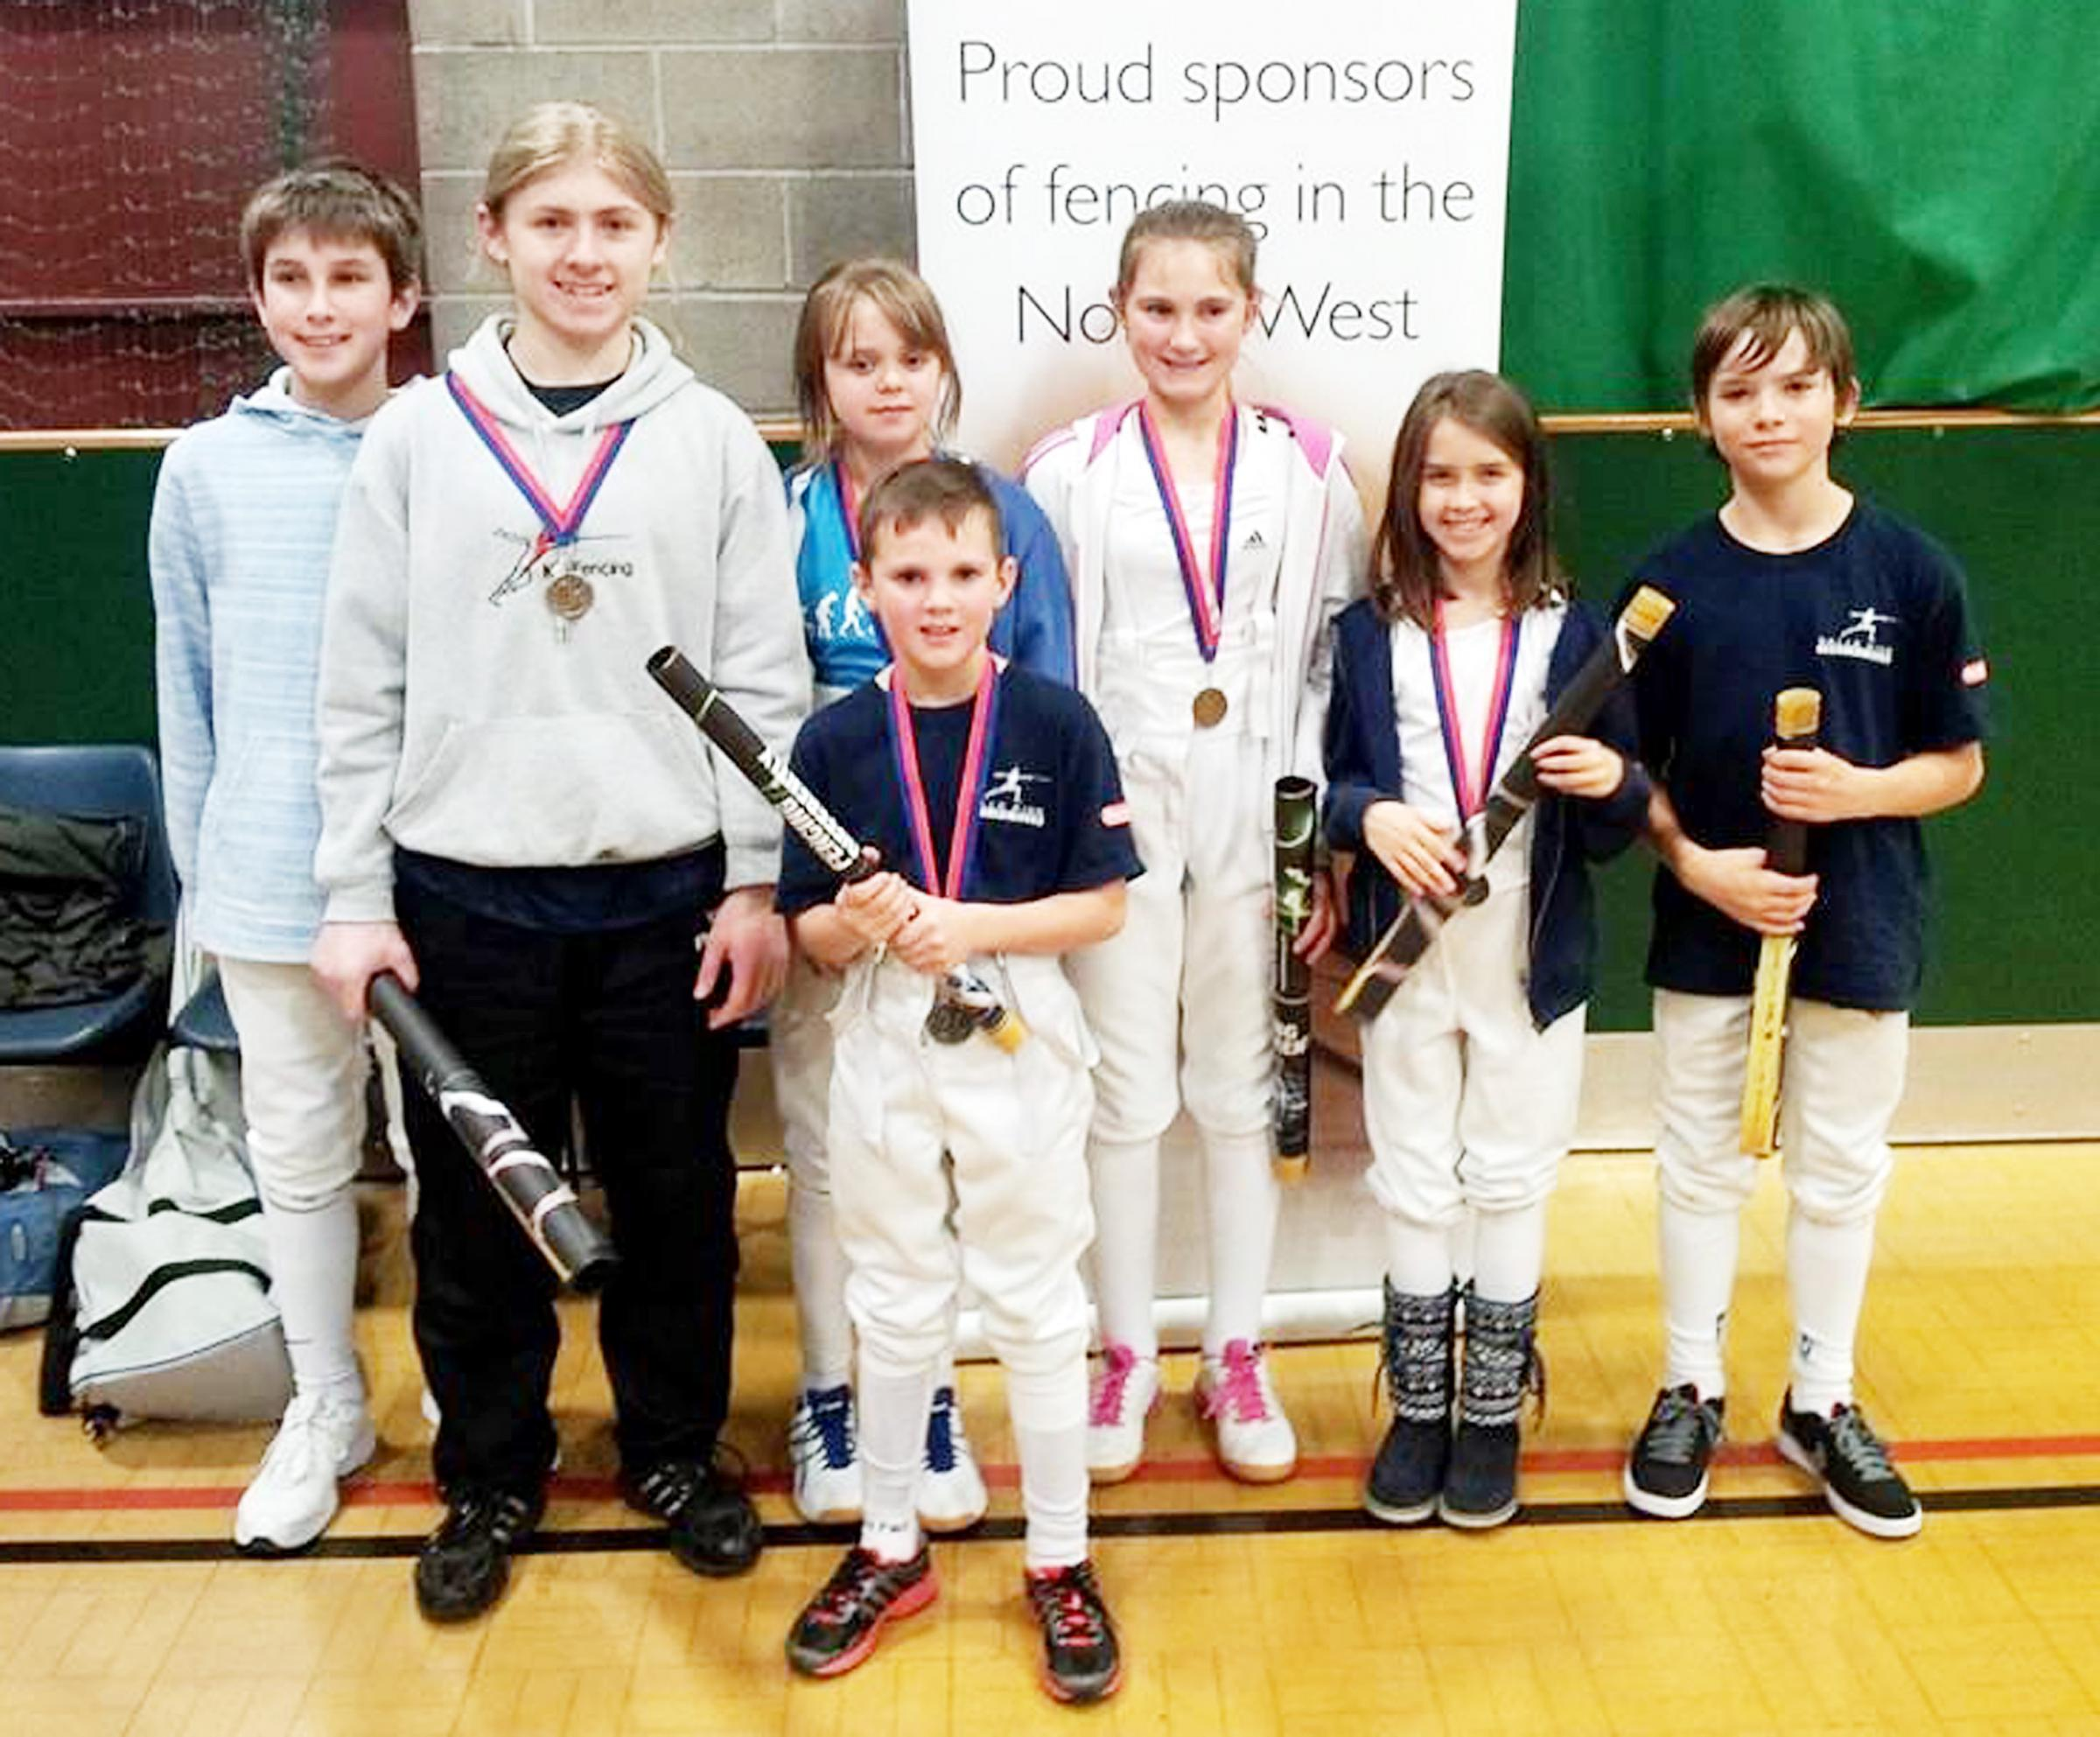 Awards and medals for dynamic fencing stars